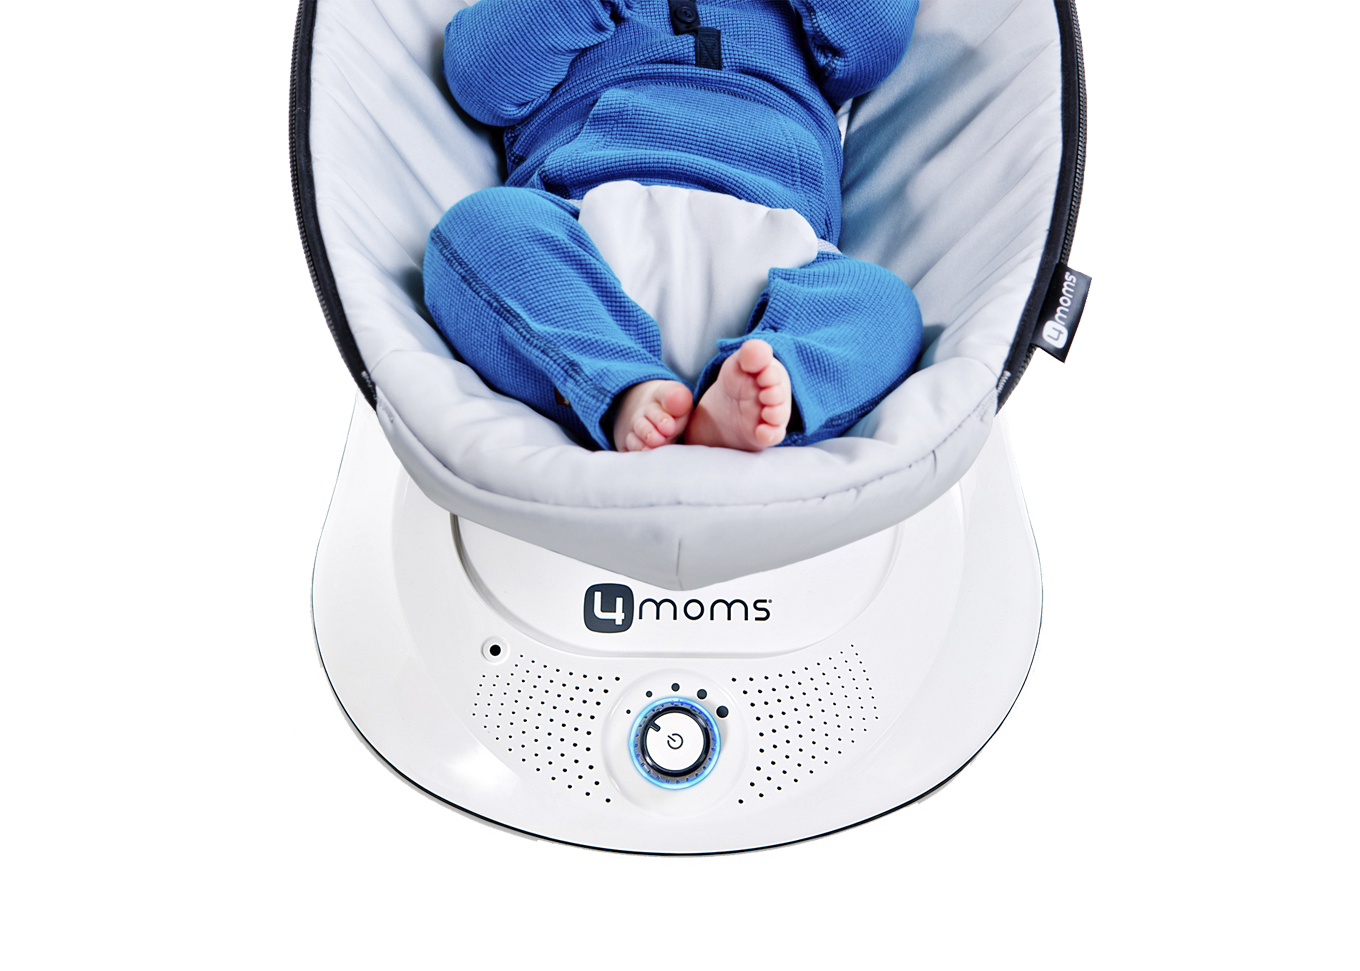 baby in baby seat with soothing adjustable speeds